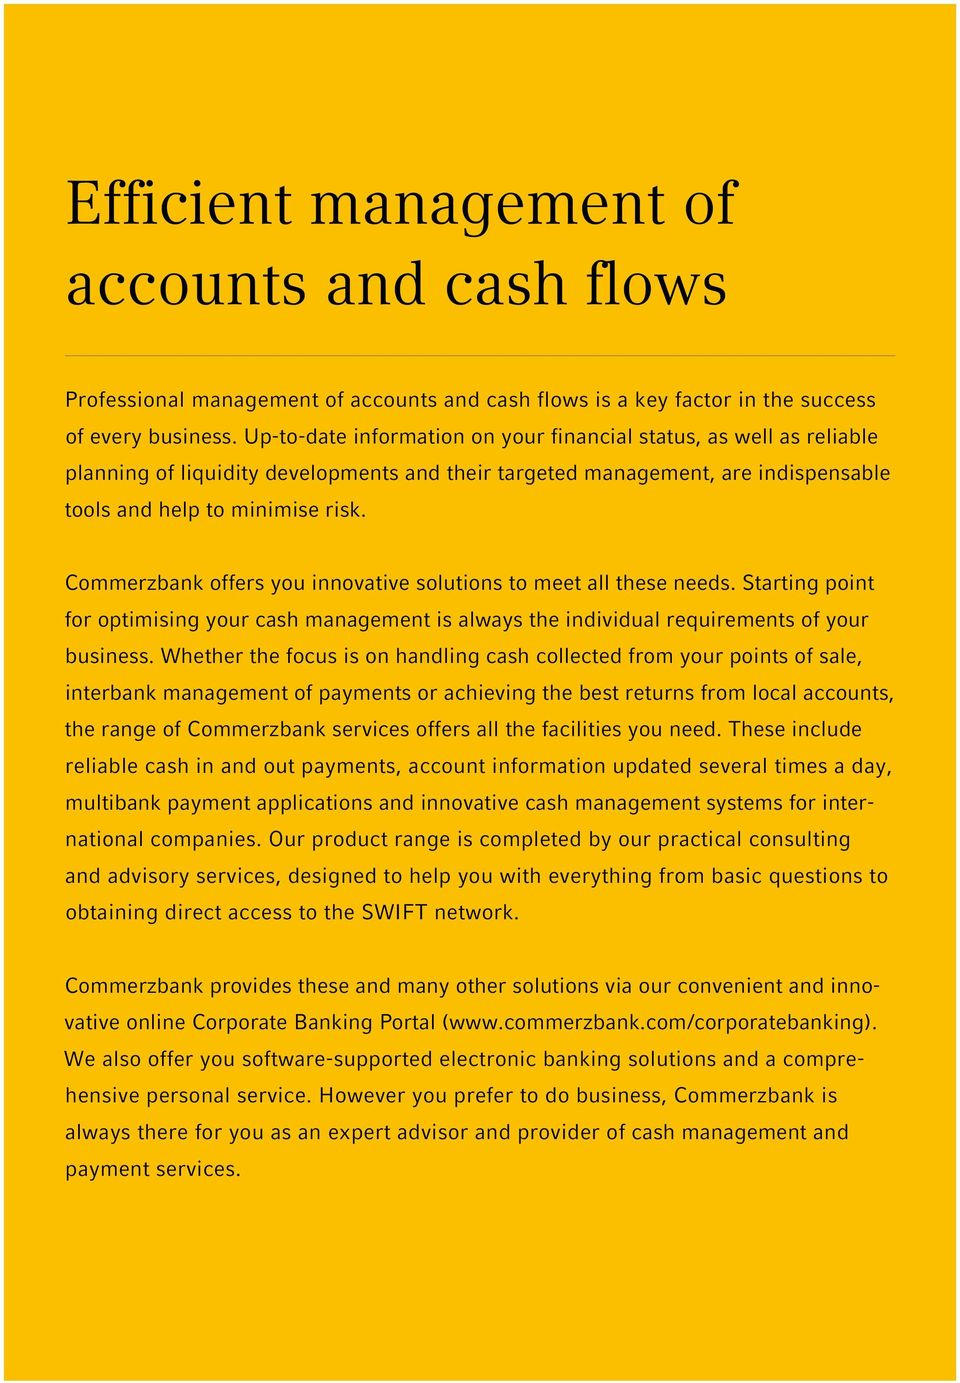 Commerzbank offers you innovative solutions to meet all these needs. Starting point for optimising your cash management is always the individual requirements of your business.